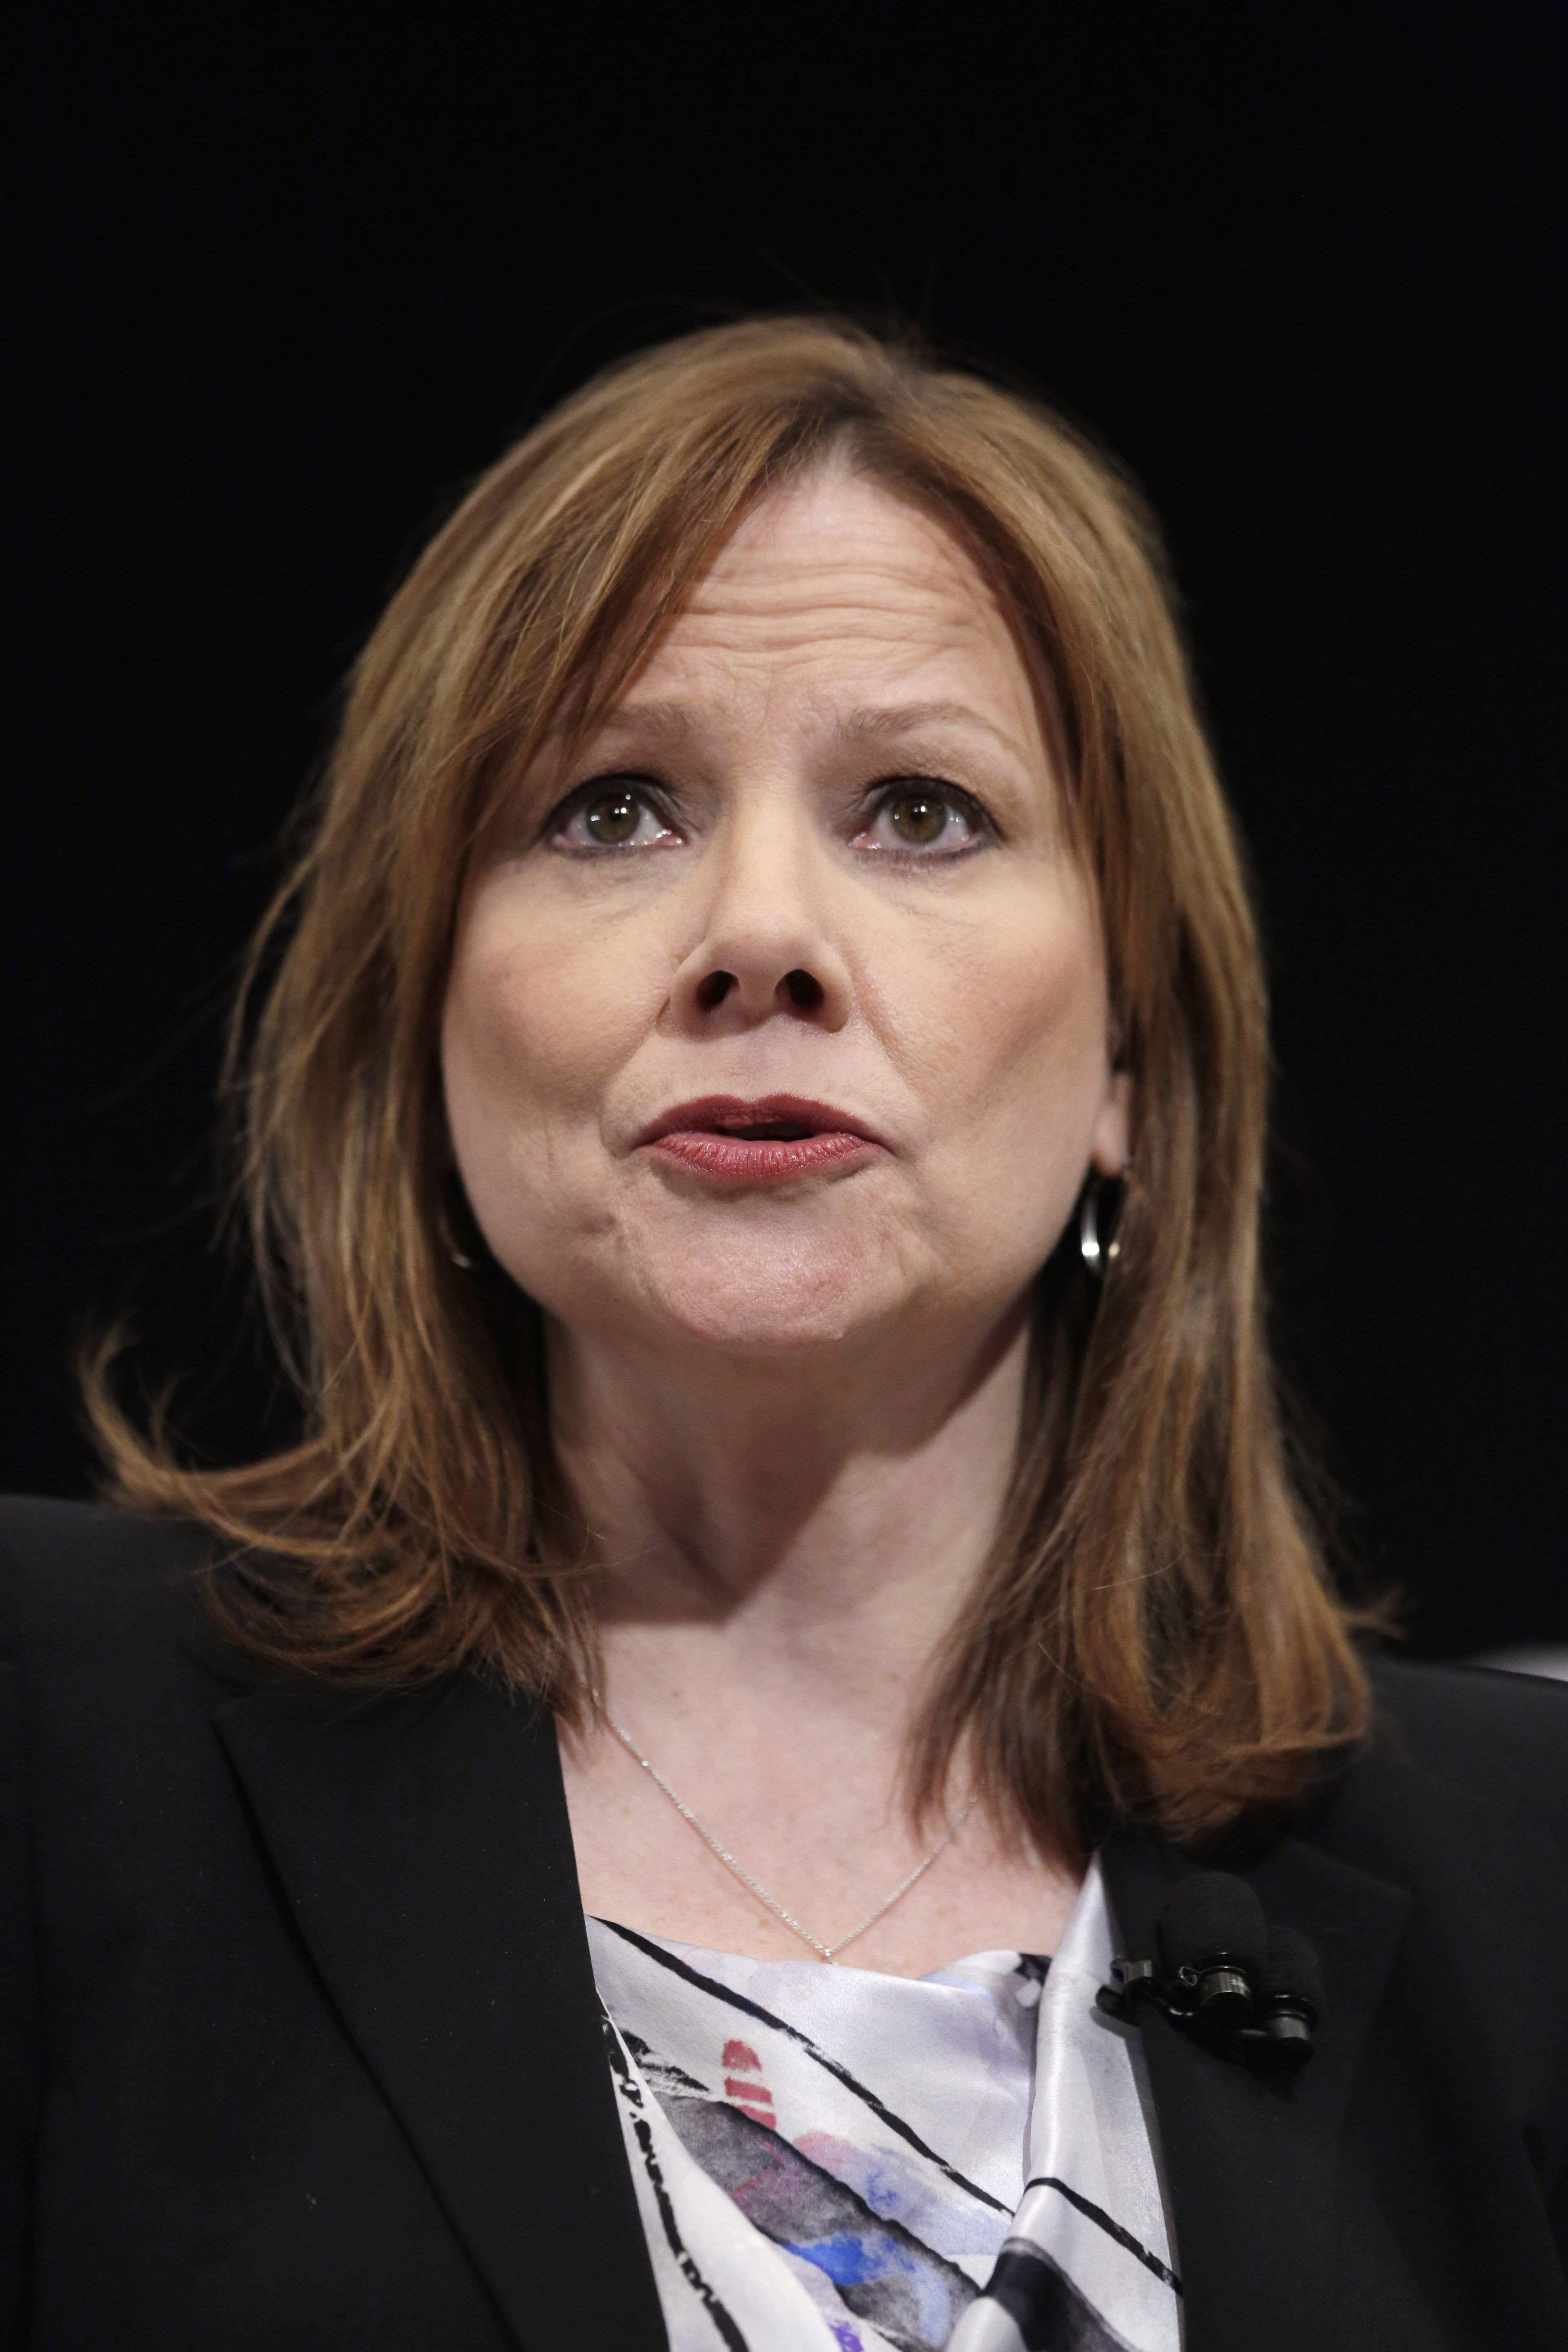 Mary Barra, CEO of General Motors, speaks at the New York International Auto Show, on April 15, 2014 in New York City.